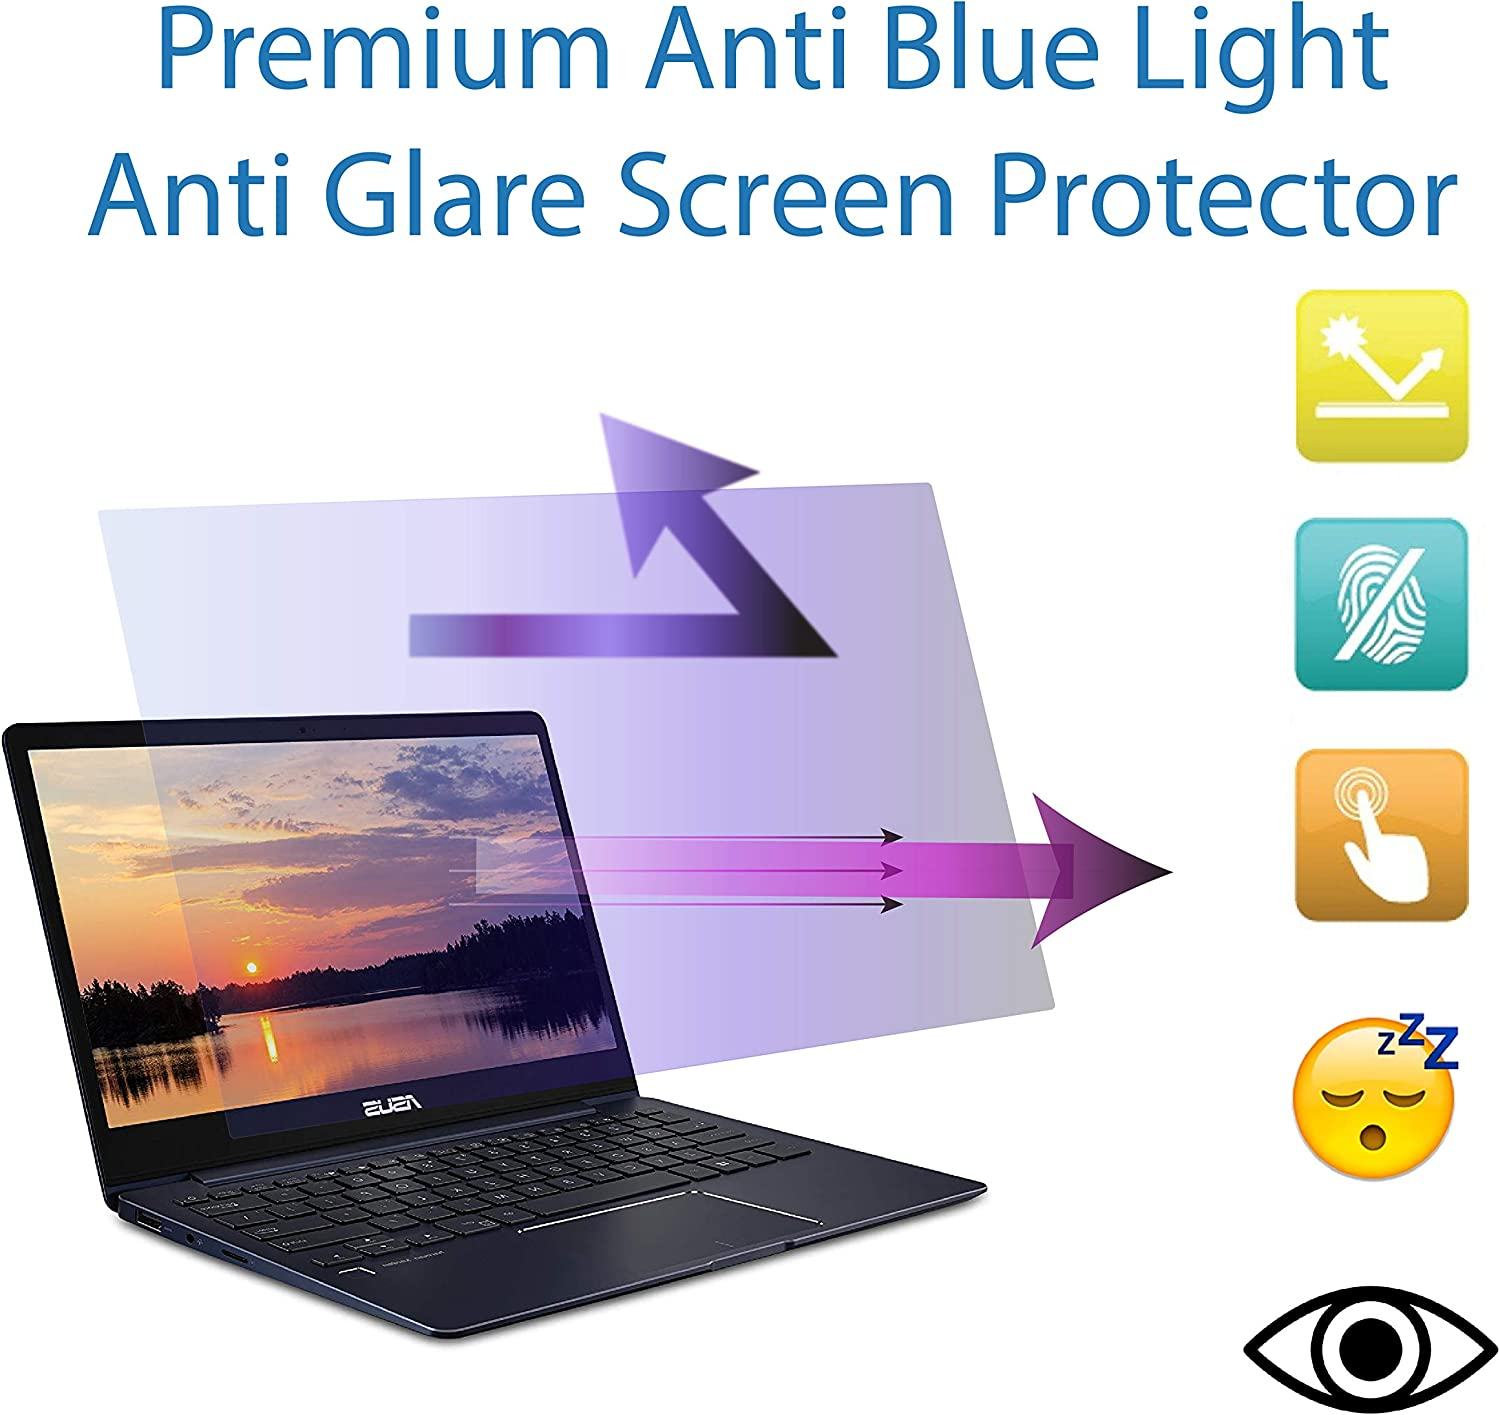 Anti Blue Light Screen Protector for 13.3 inch ASUS ZenBook 13 2 Pack